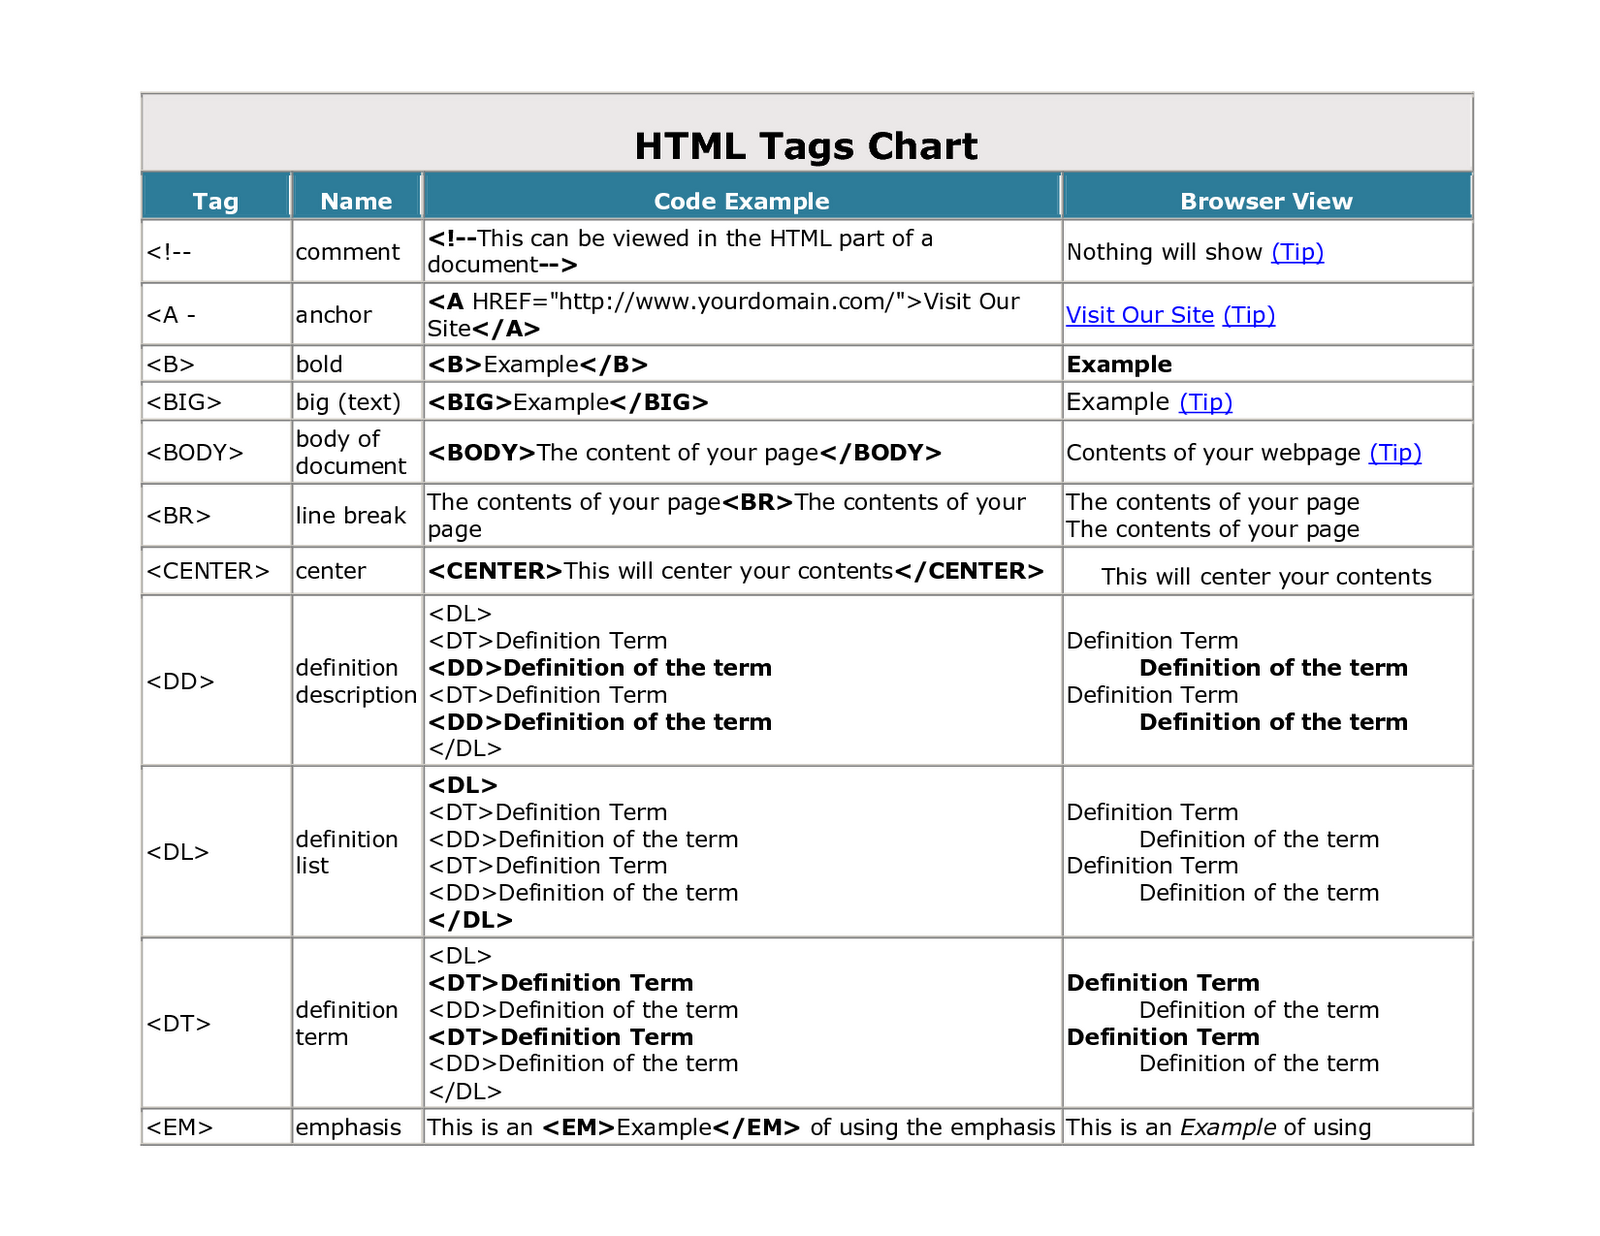 HTML Tags Ordered Alphabetically | Blogger Tips & Tricks